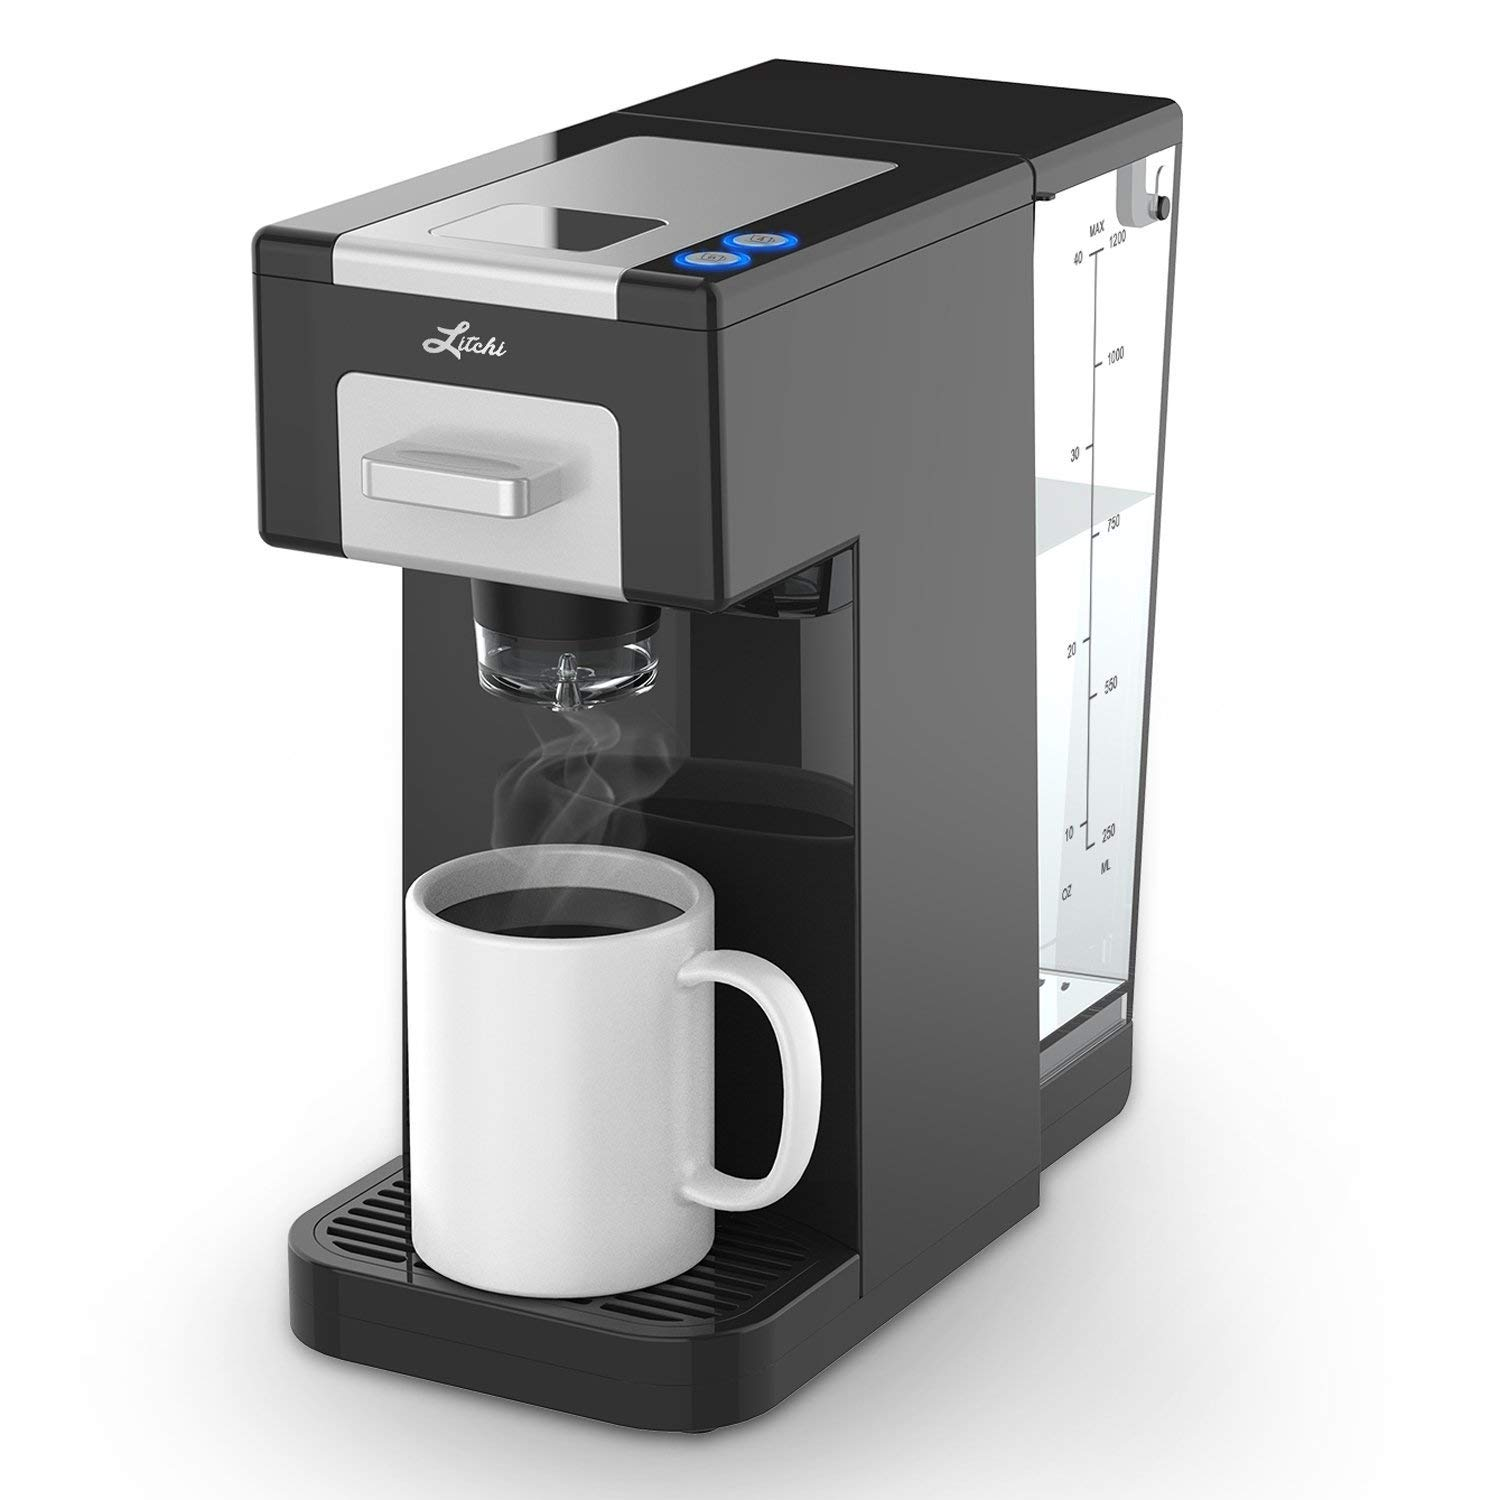 Litchi Single Serve Coffee Maker for Most Single Cup Pods Including K Cup Pods, Ground Coffee, 40 OZ Detachable Reservoir, 4 OZ, 8 OZ or Customized Brew Size